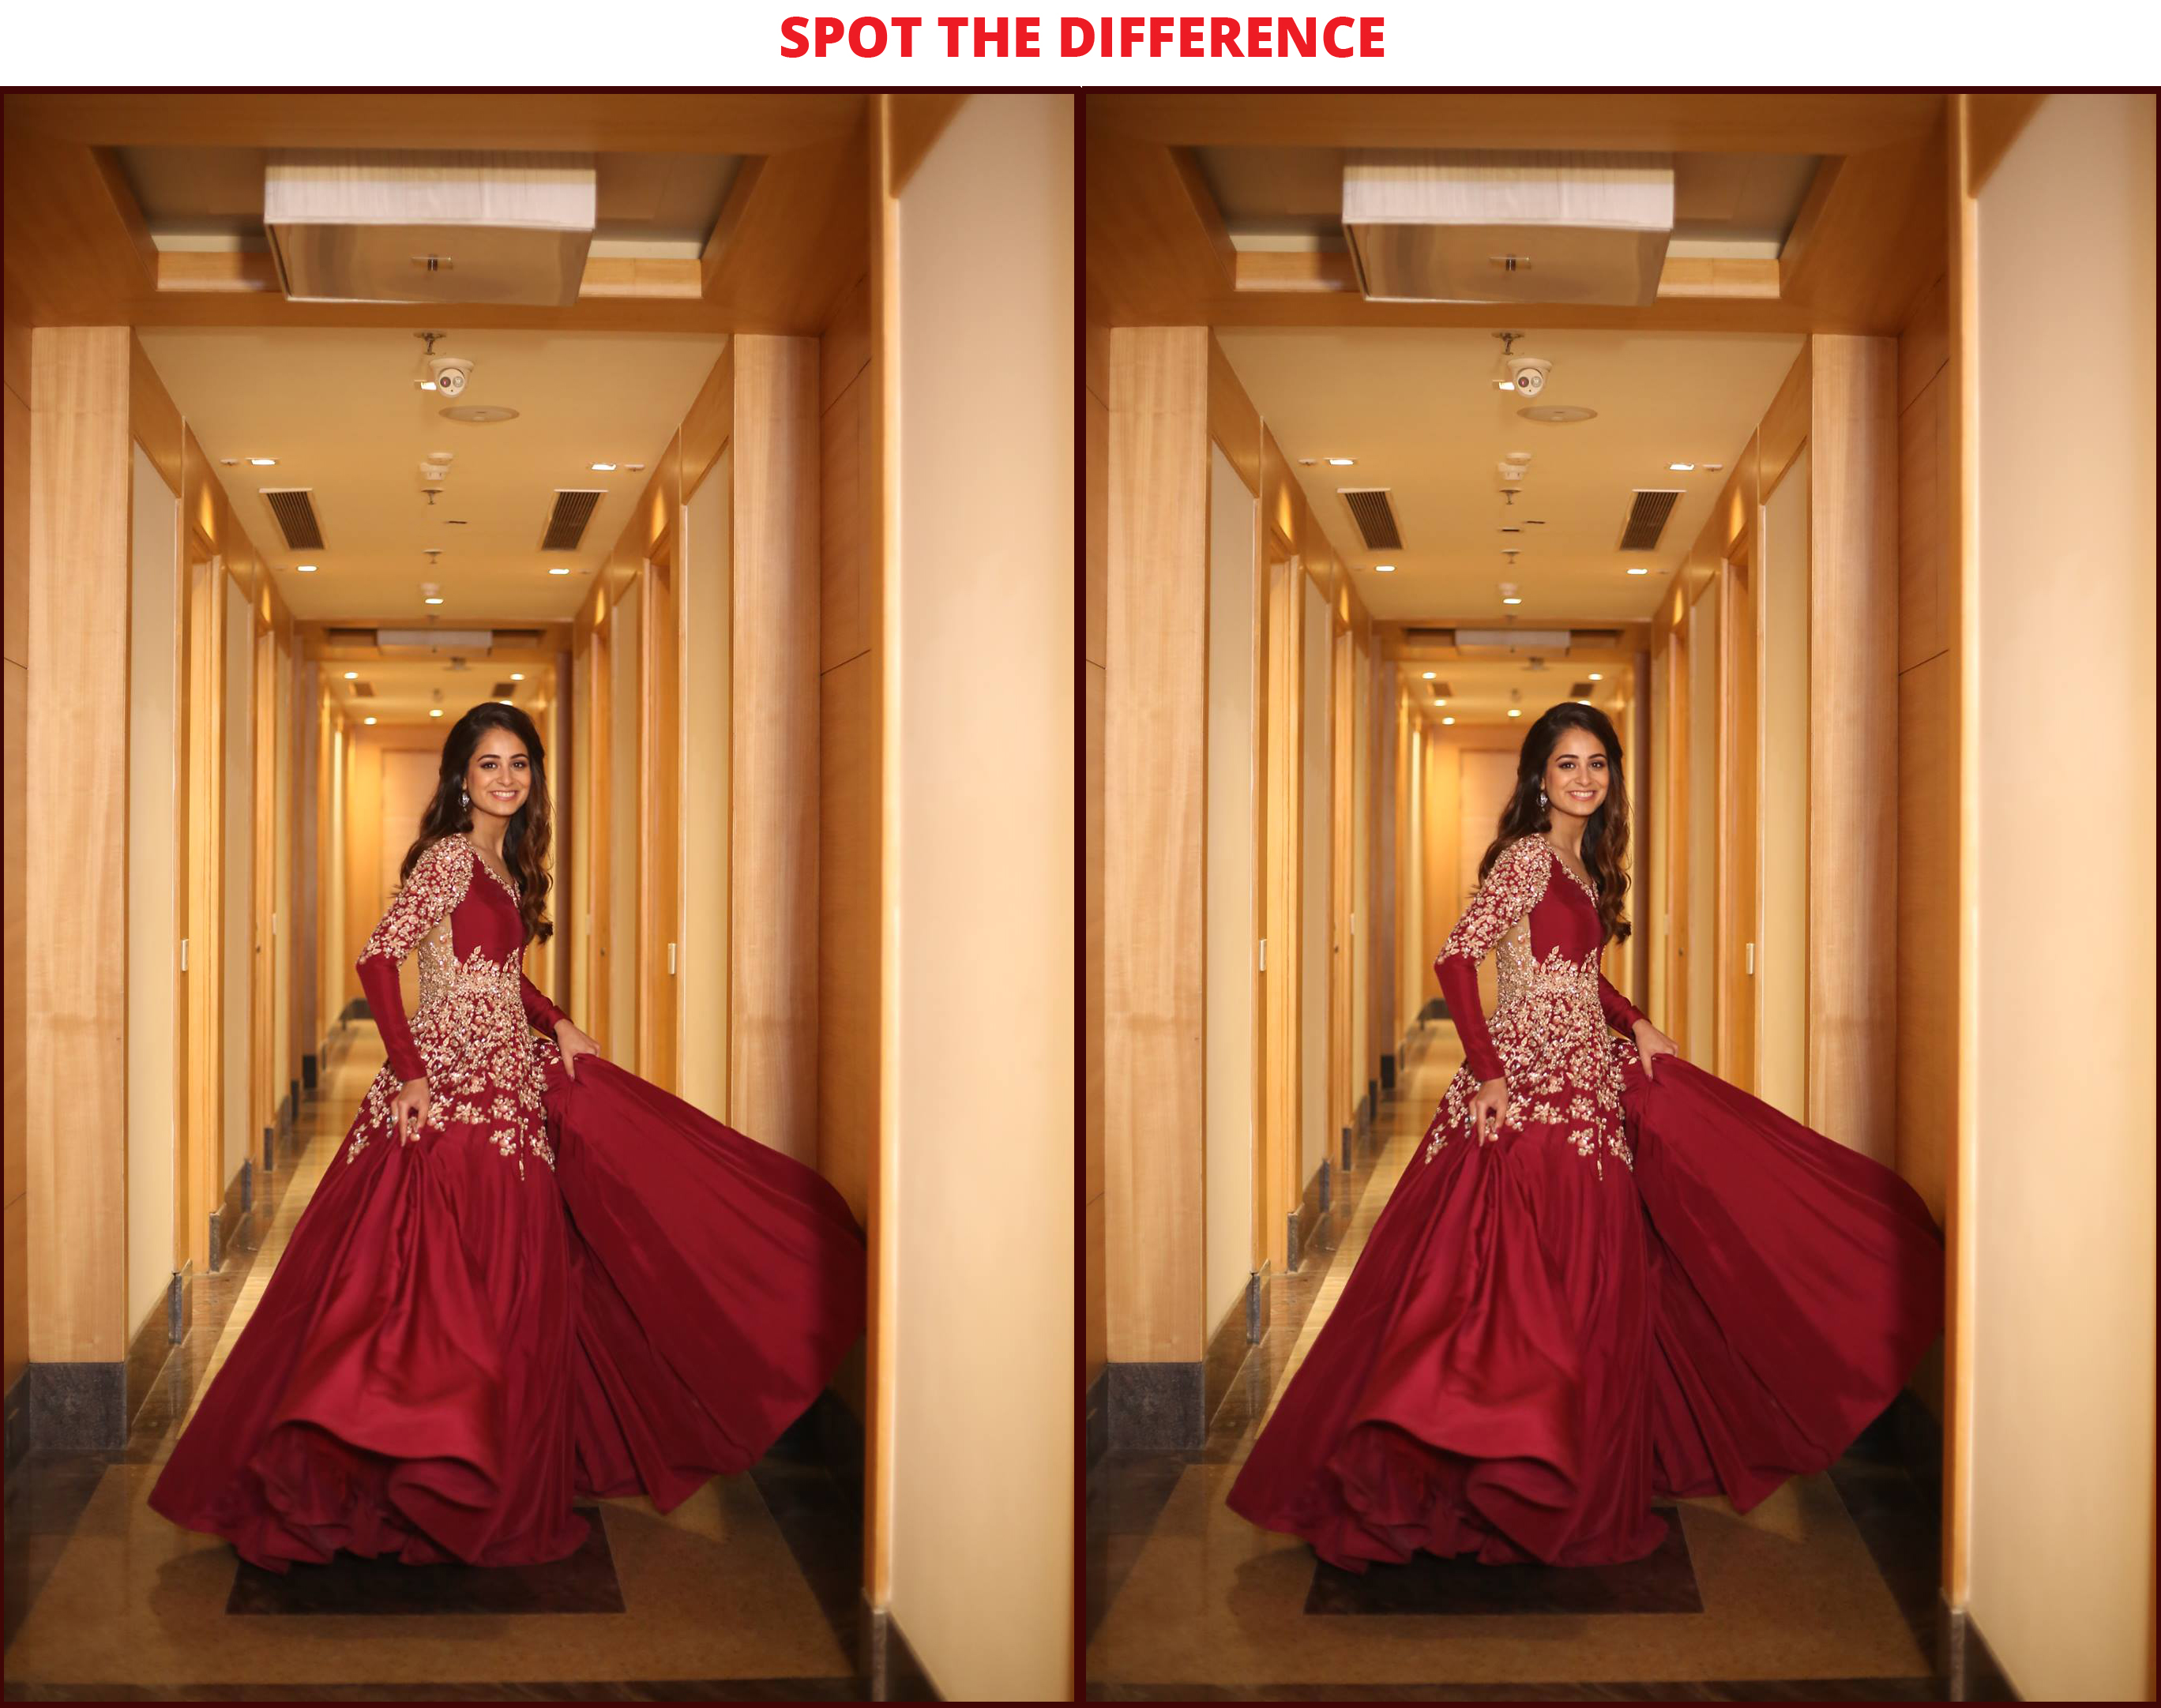 Spot the difference1